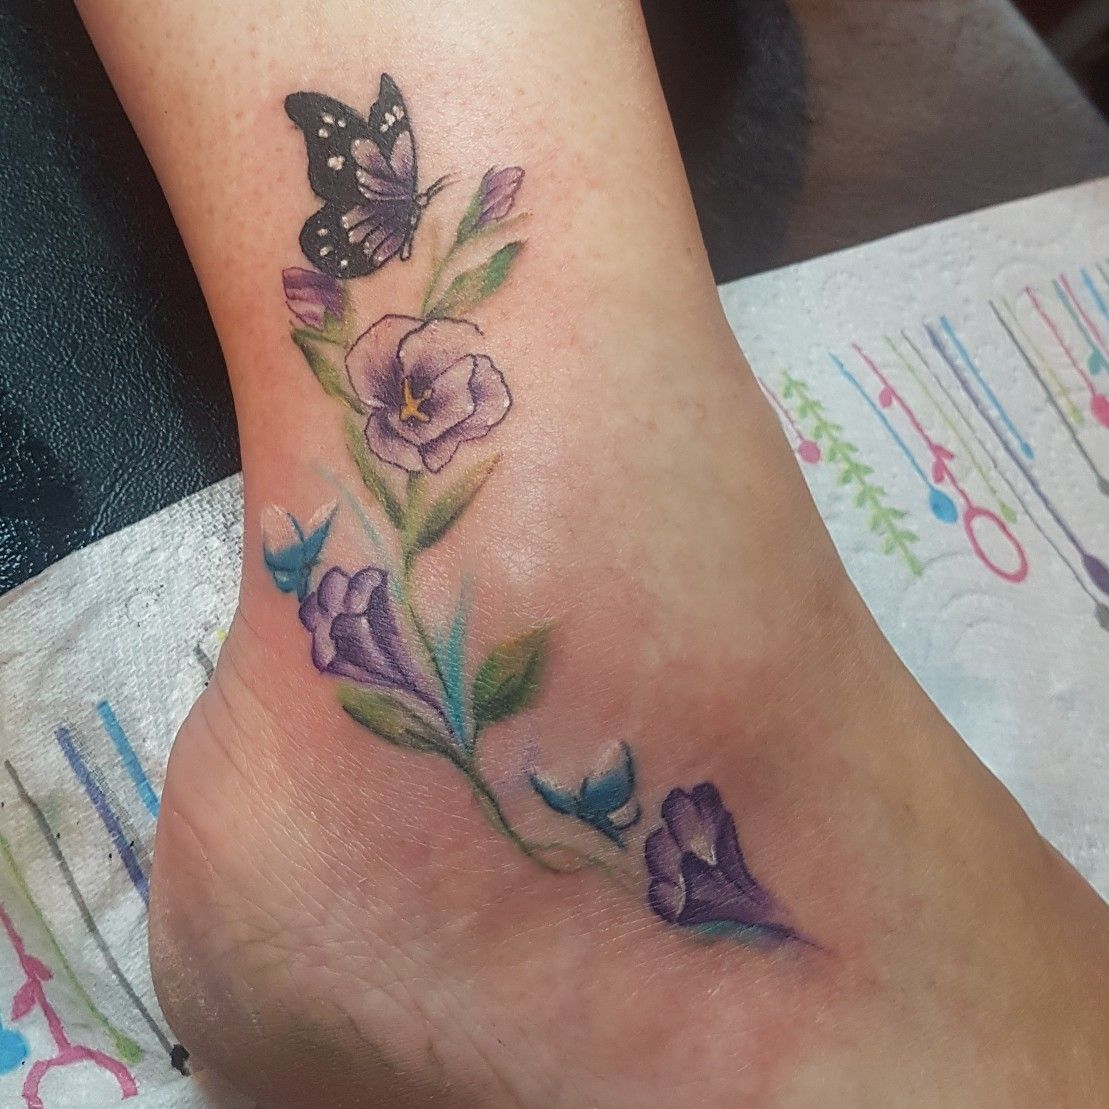 Watercolour Flowers Ankle Tattoo Flower Tattoo On Ankle Foot Tattoos For Women Cute Foot Tattoos